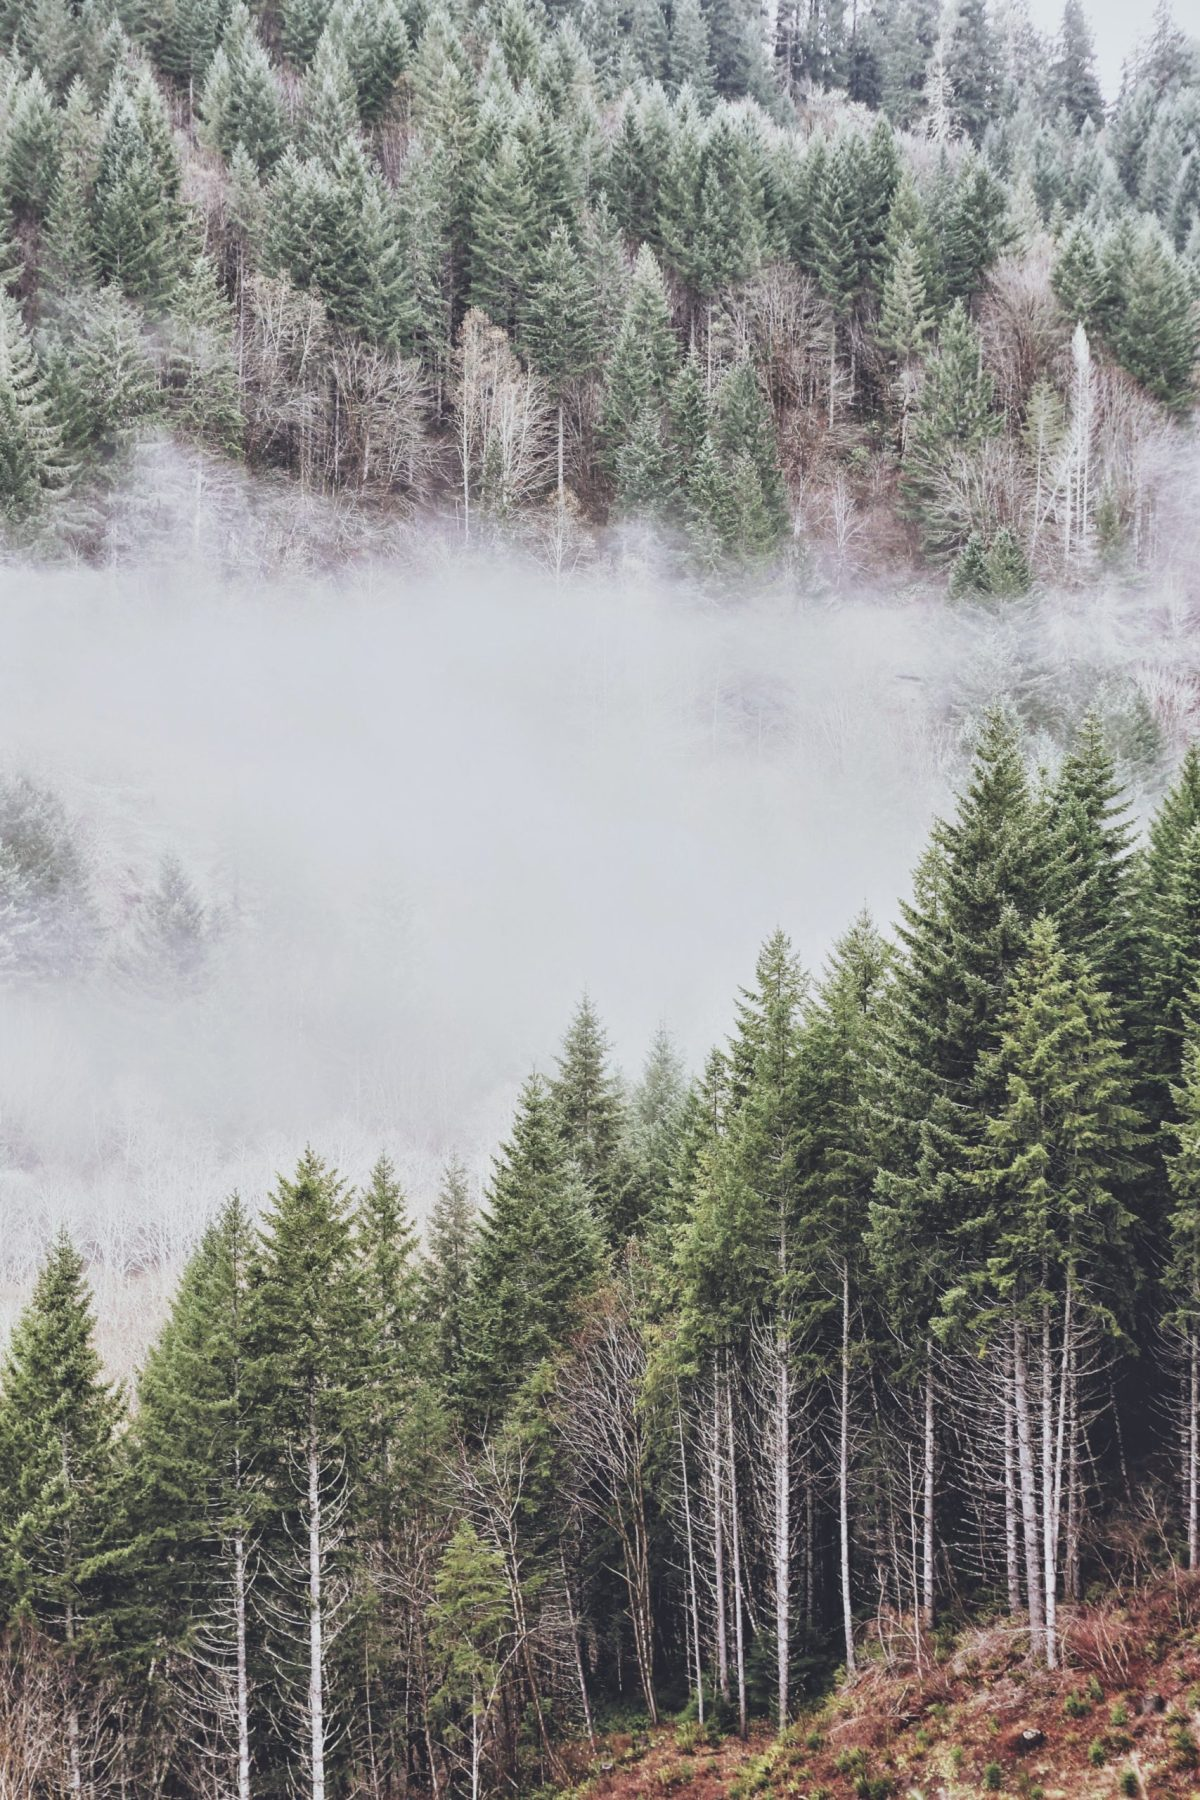 Wintery Landscape, an aerial view of evergreen trees with mist and snow